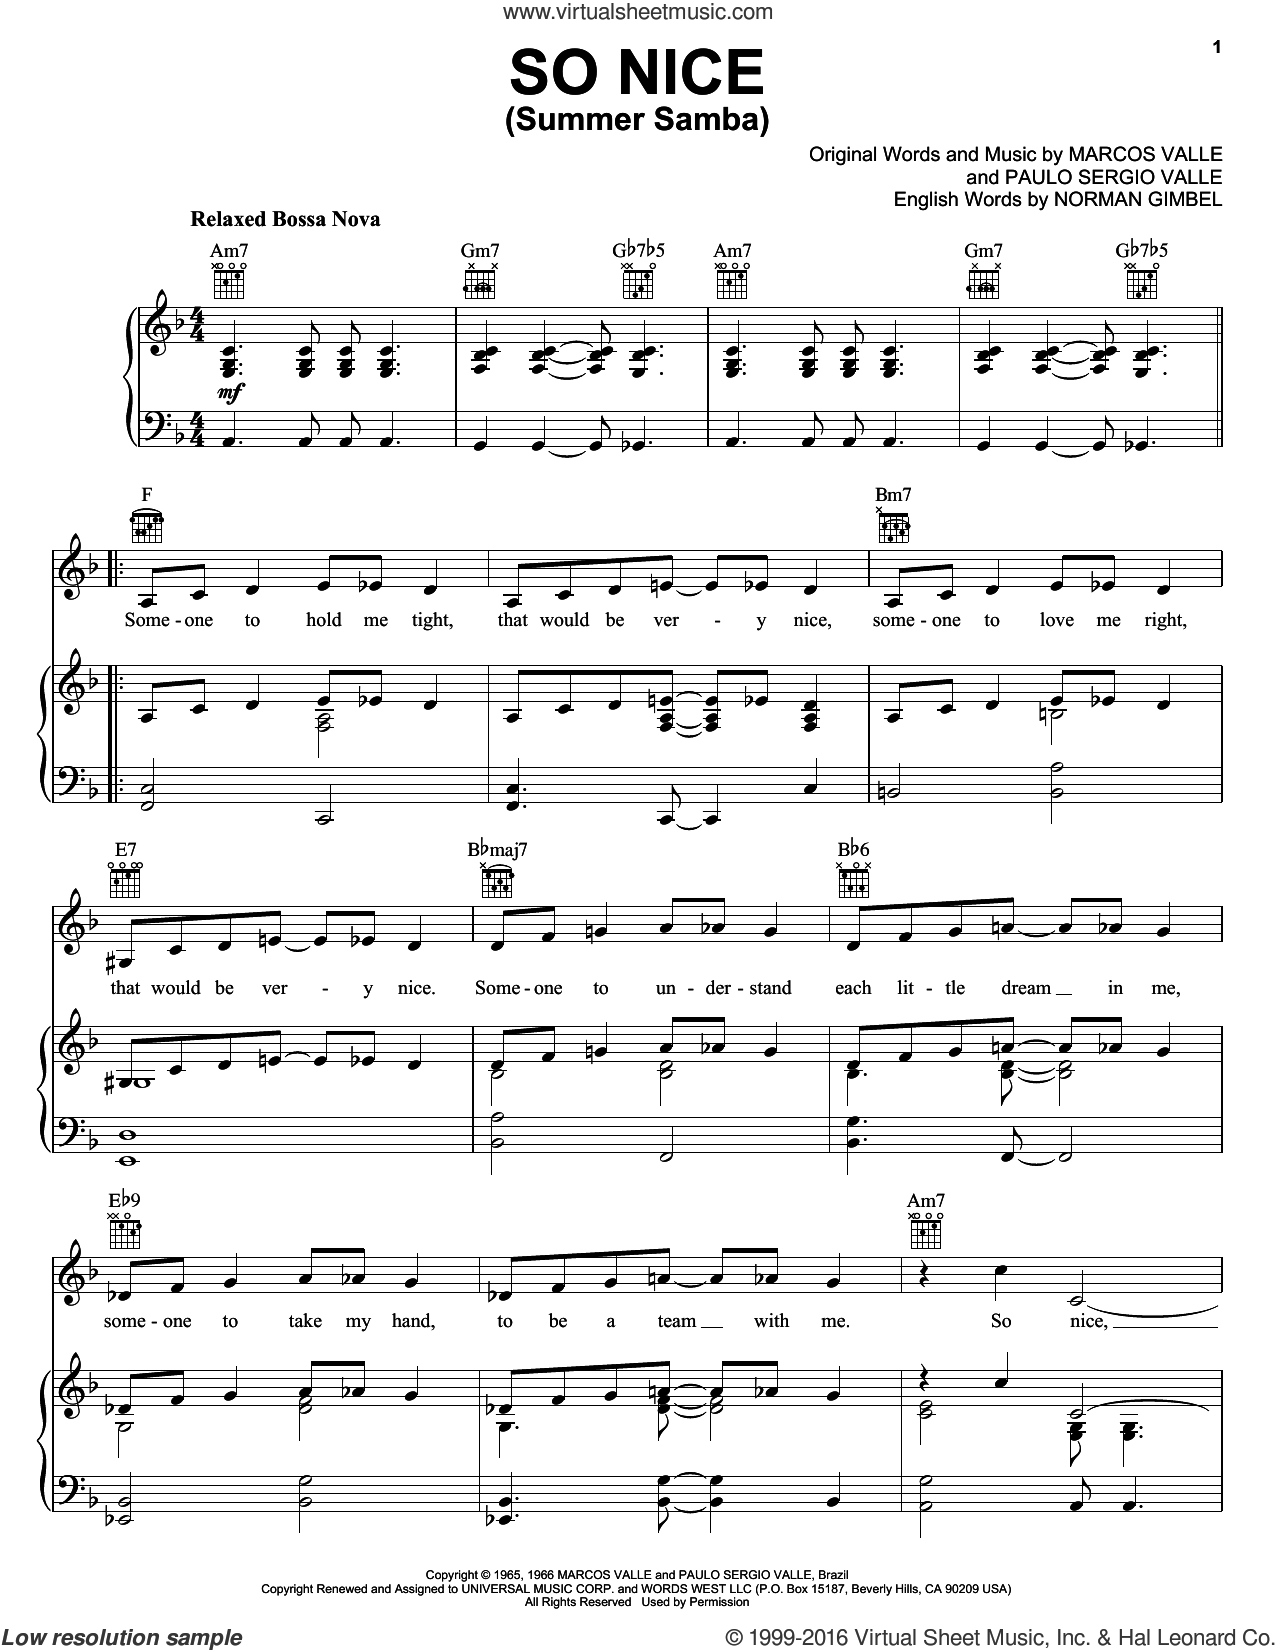 So Nice (Summer Samba) sheet music for voice, piano or guitar by Marcos Valle, Norman Gimbel and Paulo Sergio Valle, intermediate skill level